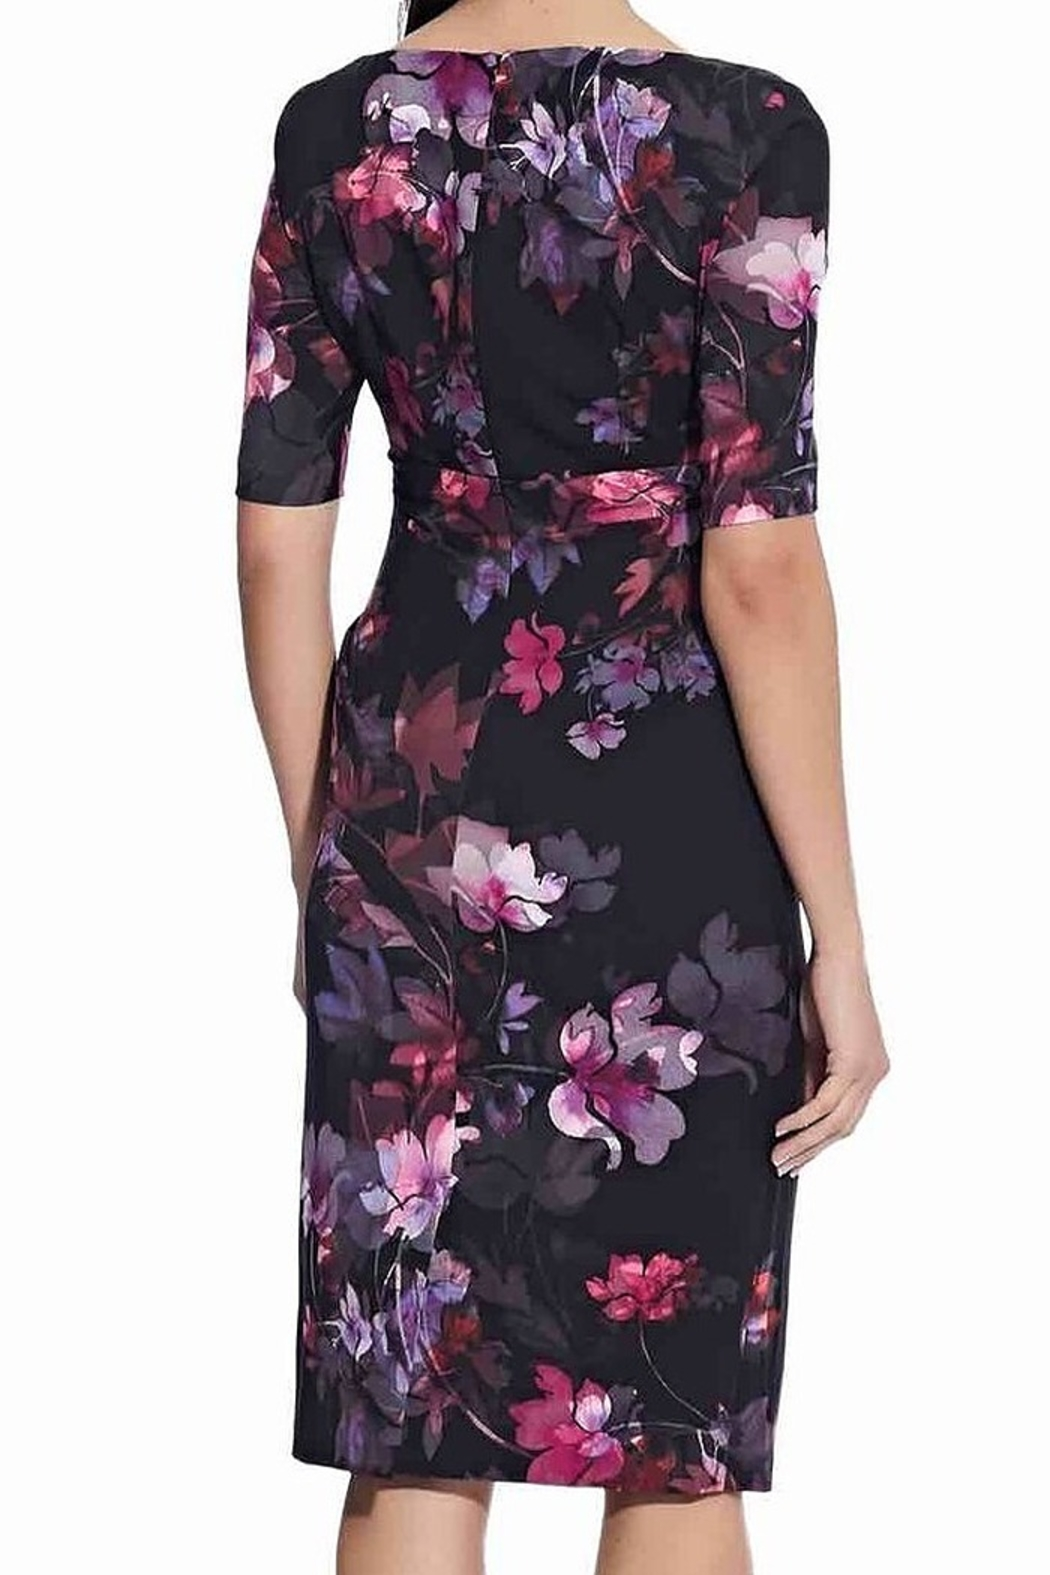 Adrianna Papell Watercolor Lilies Midi Sheath Dress - Side Cropped Image